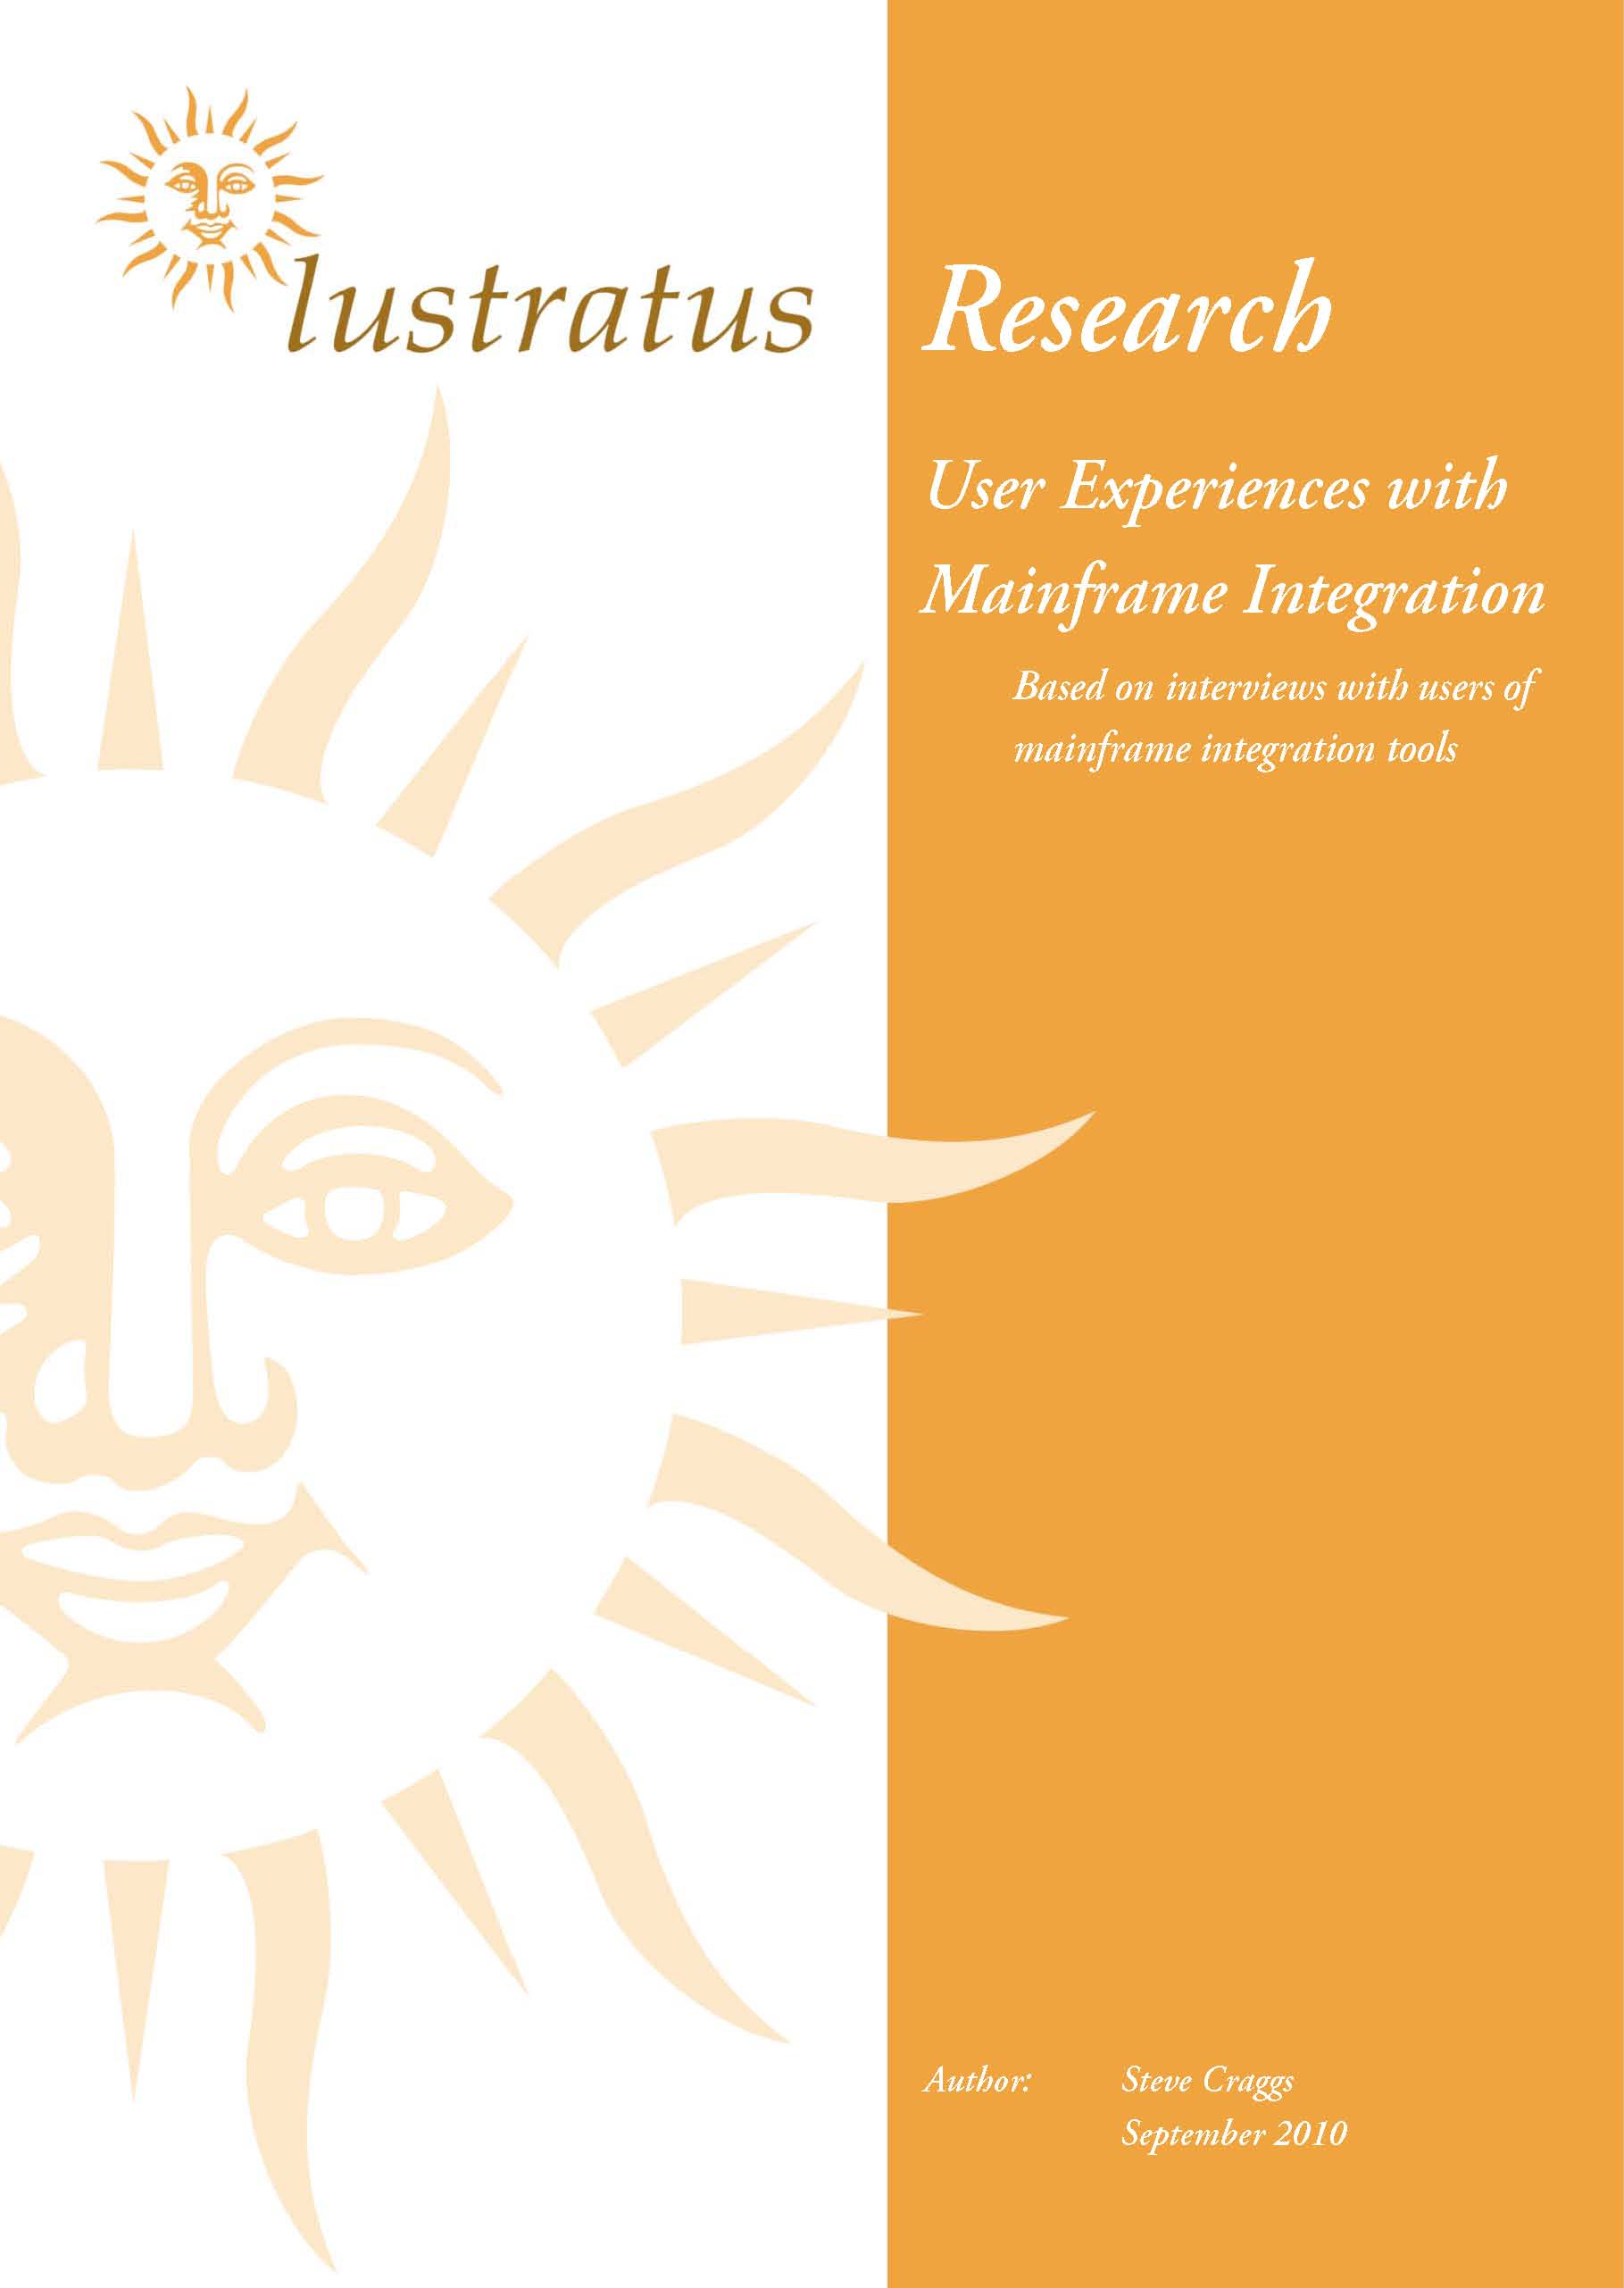 Pages from User Experiences with Mainframe Integration